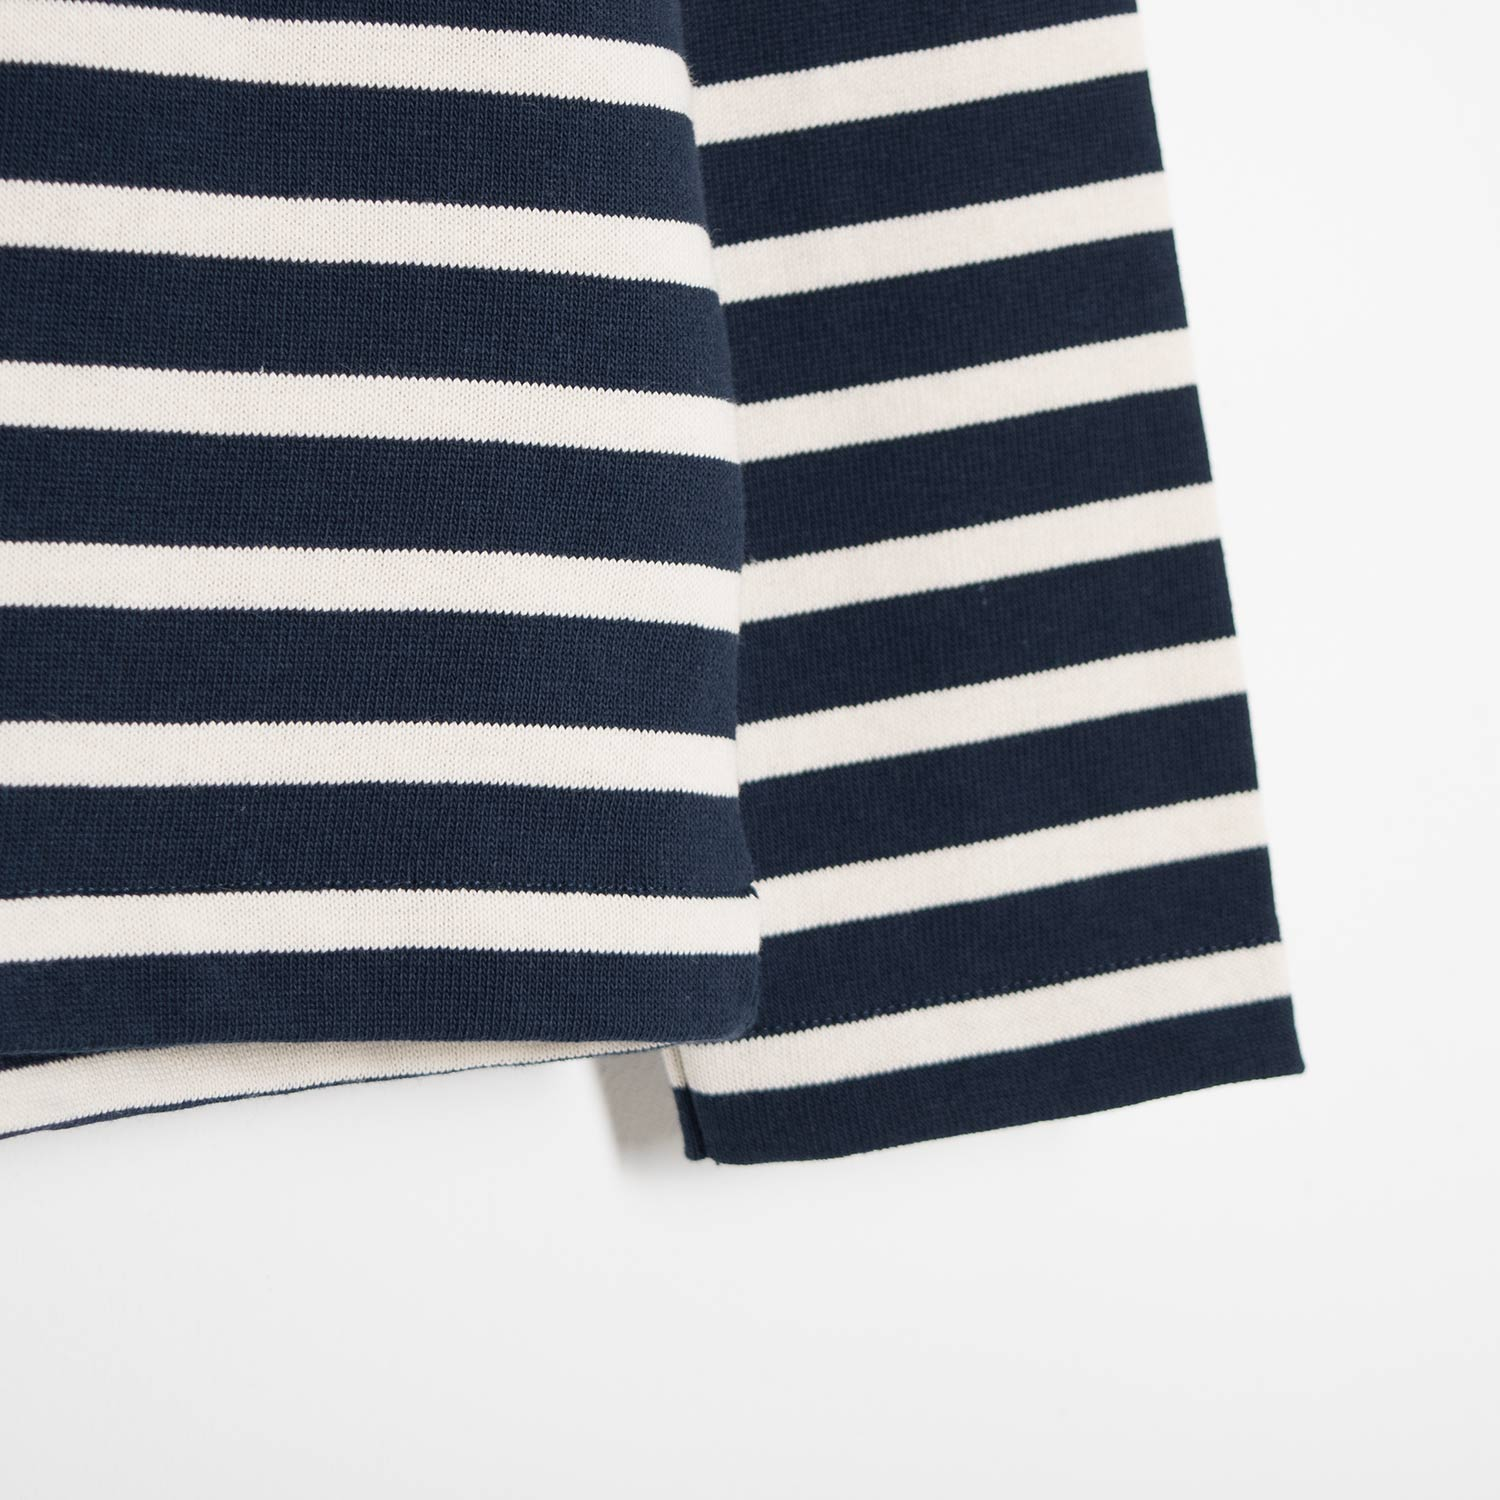 YMC Chino Breton Stripe Turtle Neck - Navy/Ecru